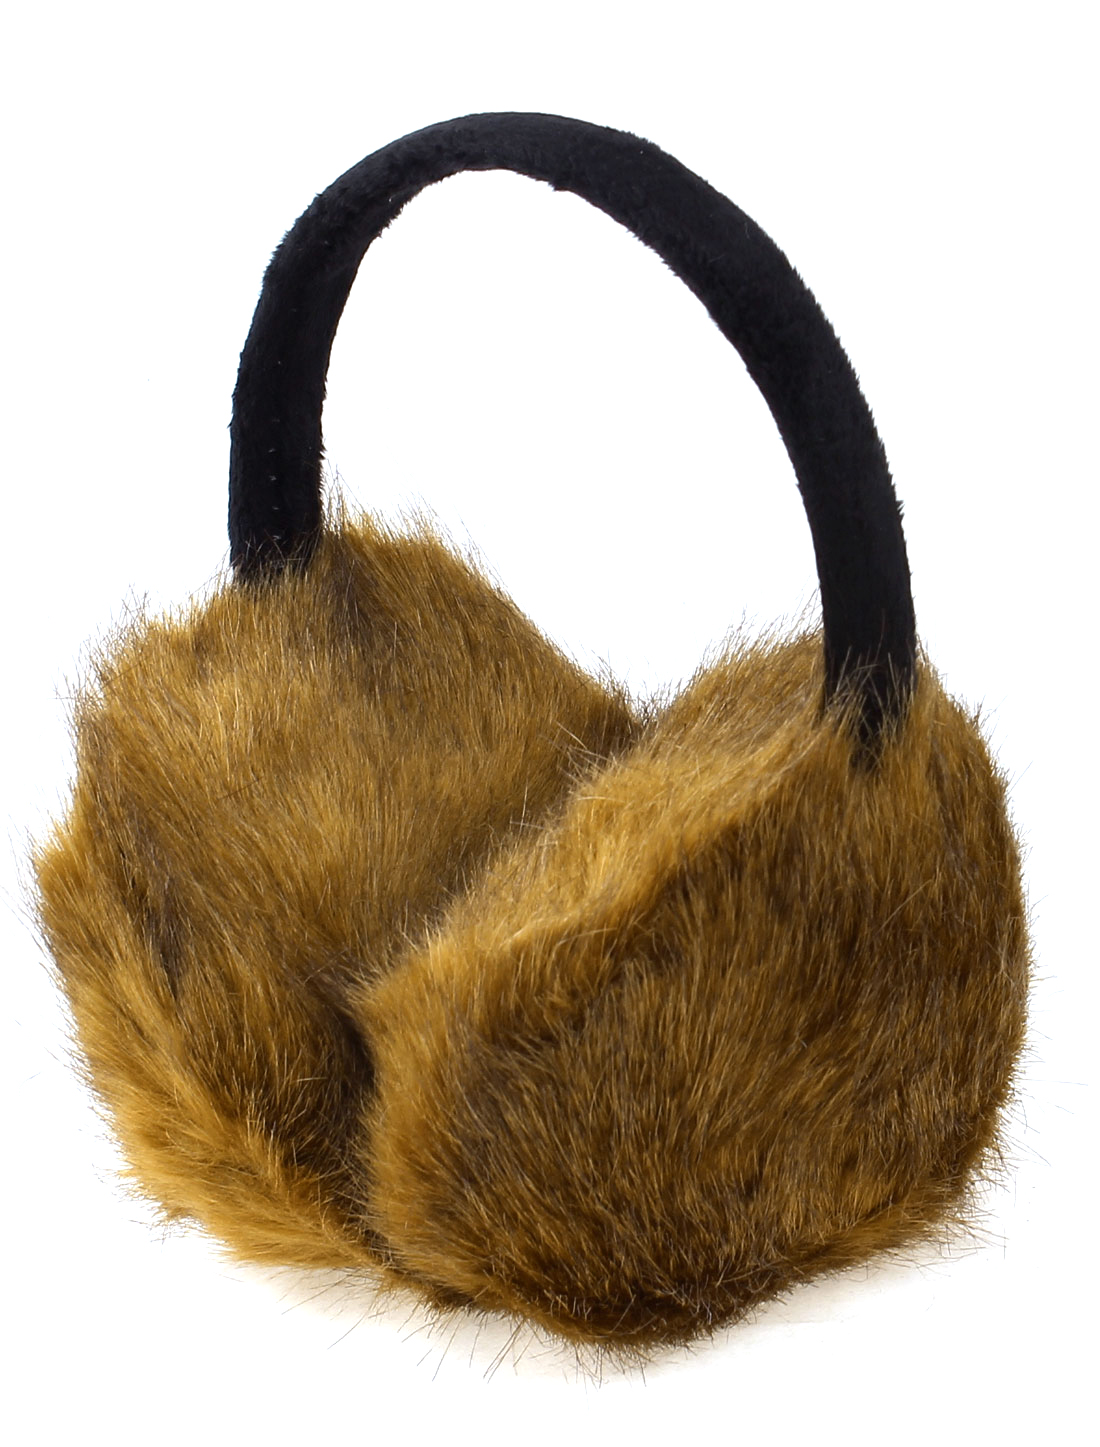 Brown Comfy Warmer Earcap Headband Ear Muffs Earmuffs for Ladies